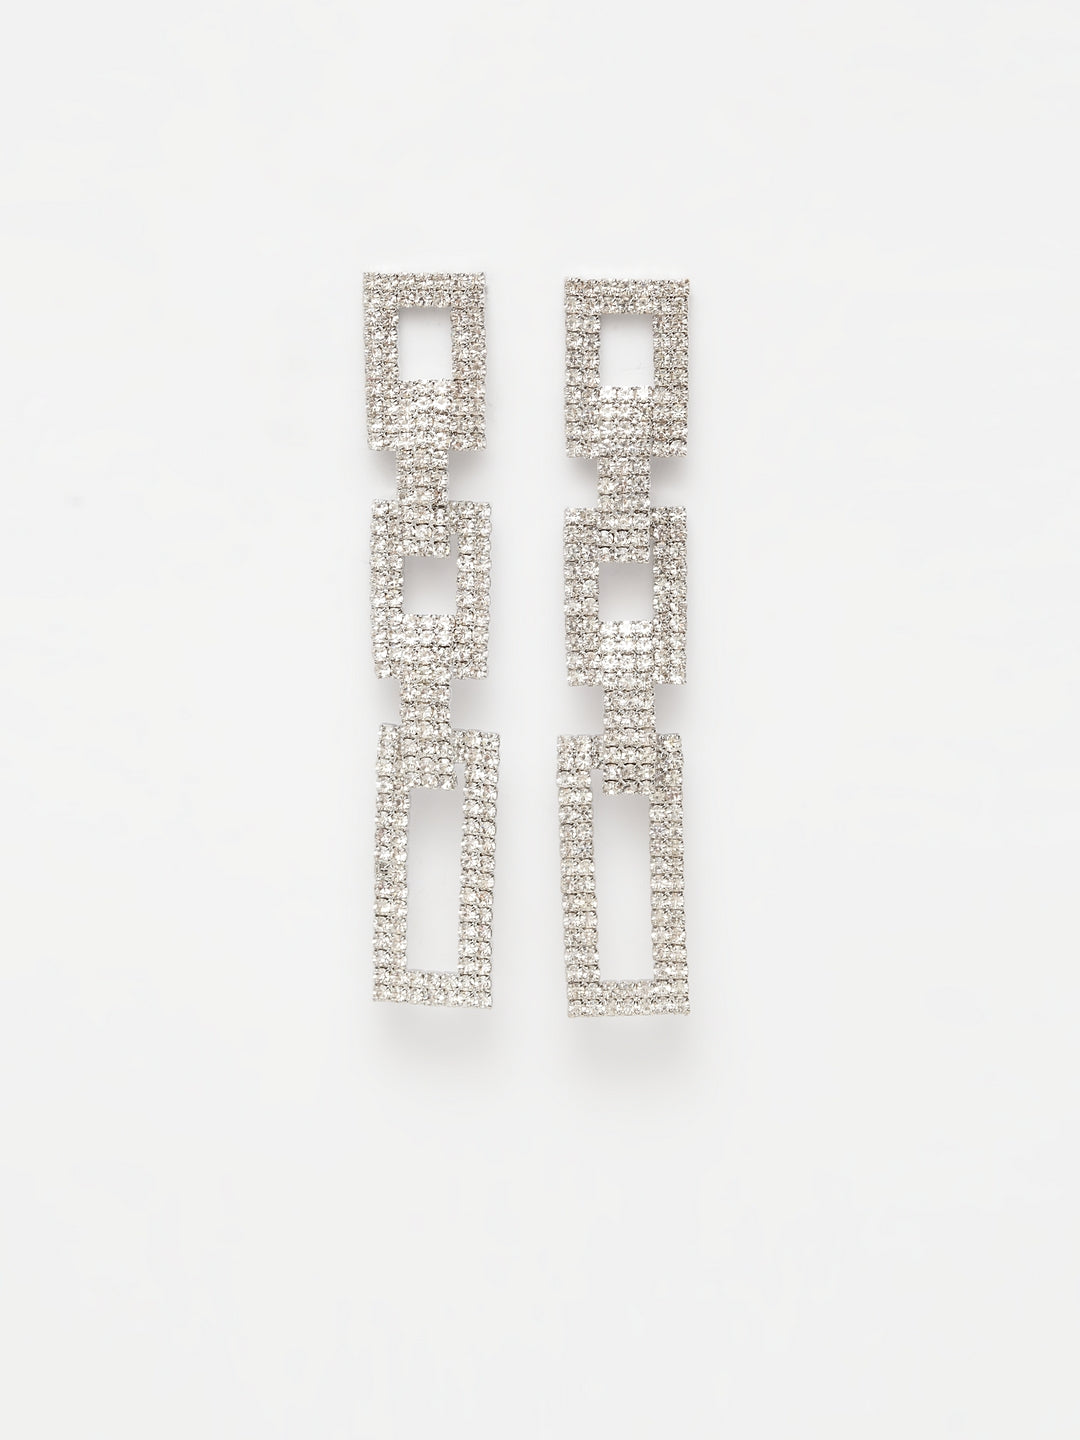 Avant-Garde Paris Geometric Square Shaped Hangings Embellished With Silver Crystal